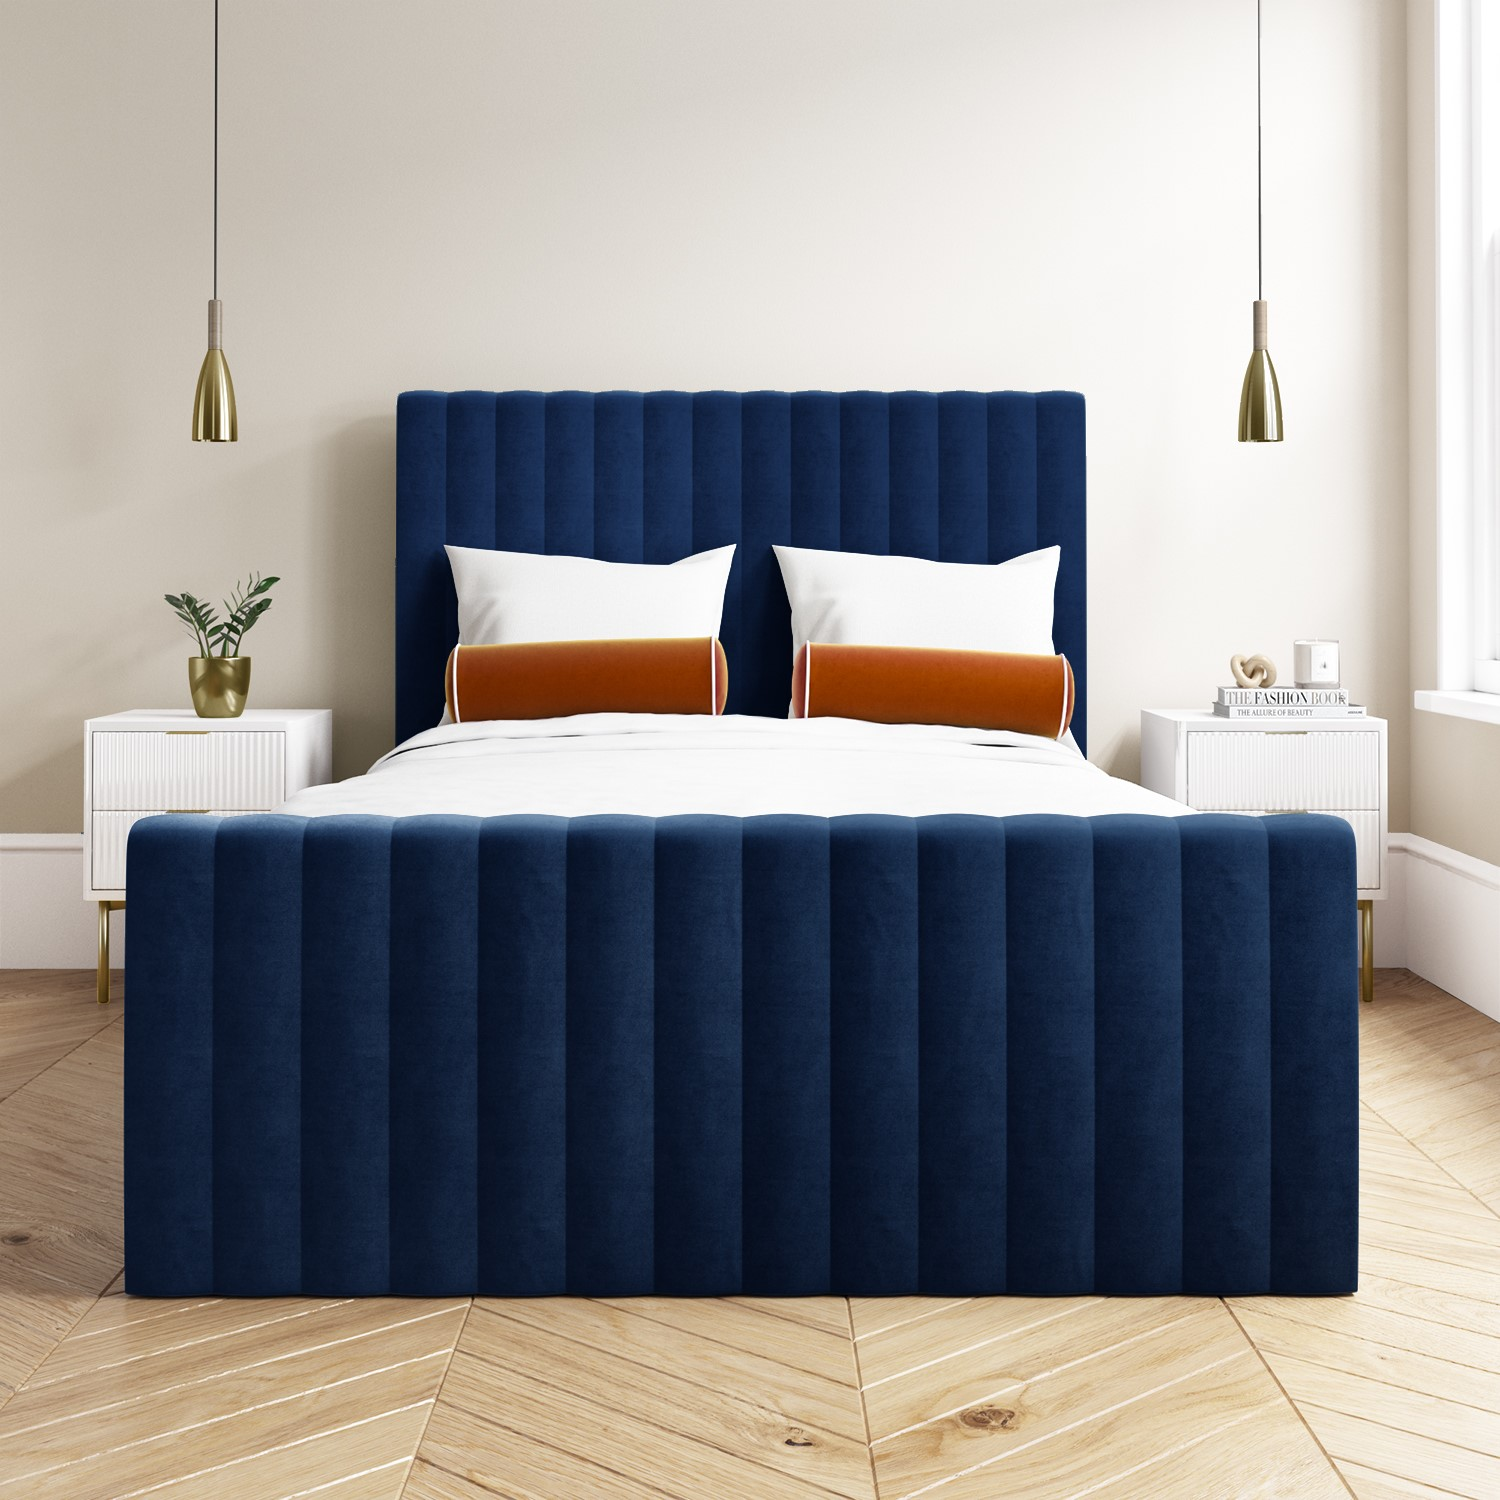 Groovy Khloe Double Side Ottoman Bed In Navy Blue Velvet Unemploymentrelief Wooden Chair Designs For Living Room Unemploymentrelieforg